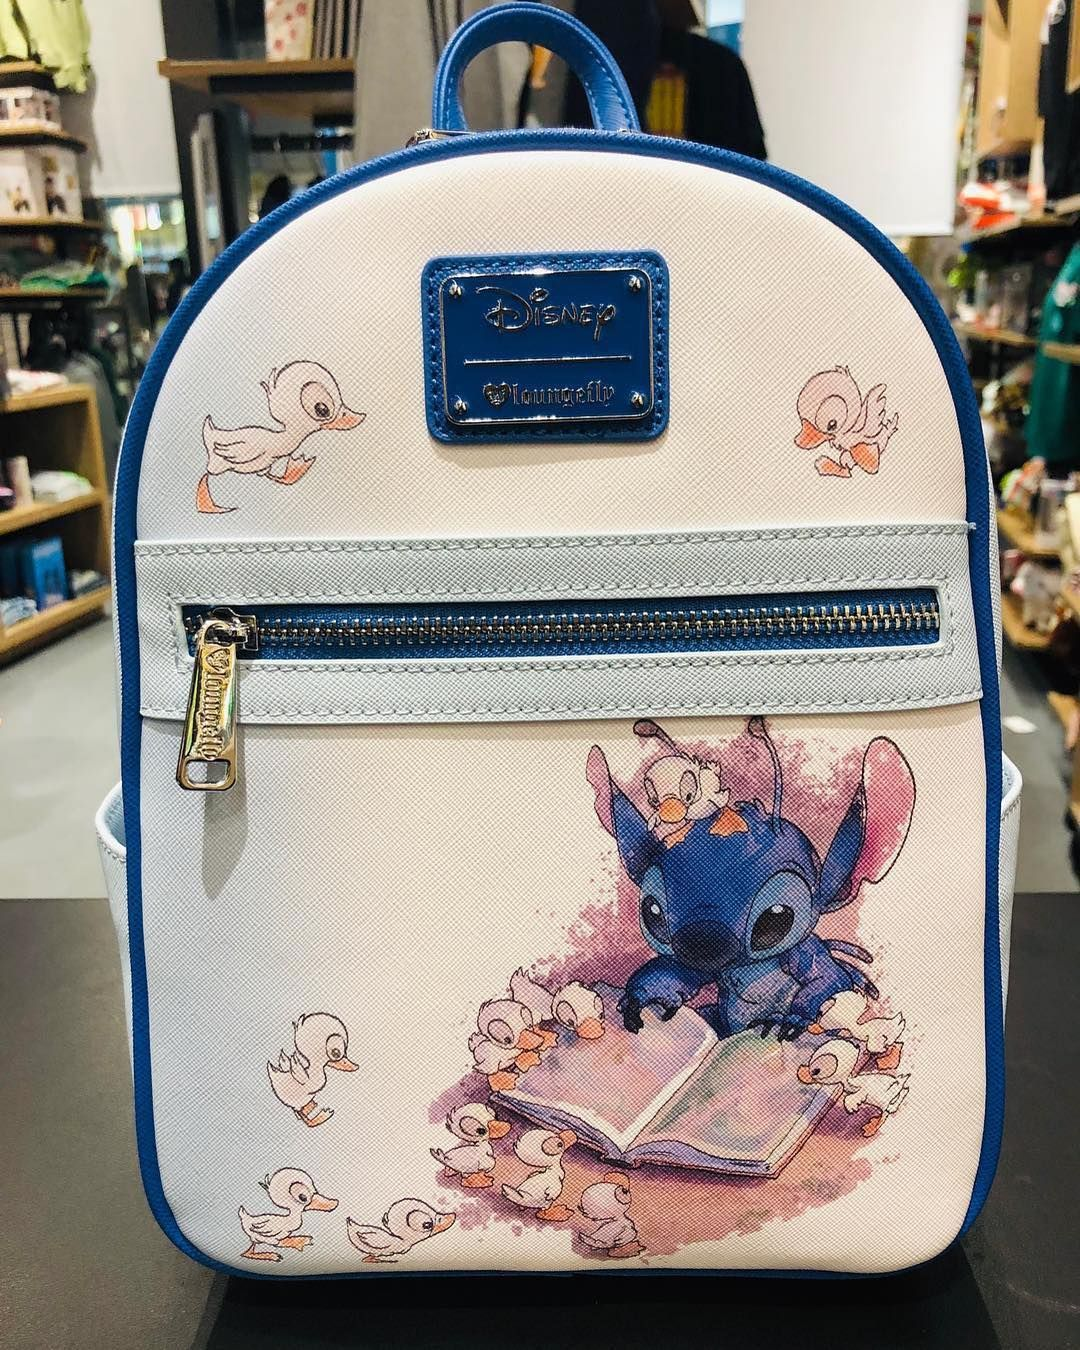 bc88bd3ee03 Disney Loungefly Stitch backpack cuteness from  Boxlunch - adorable  overload!